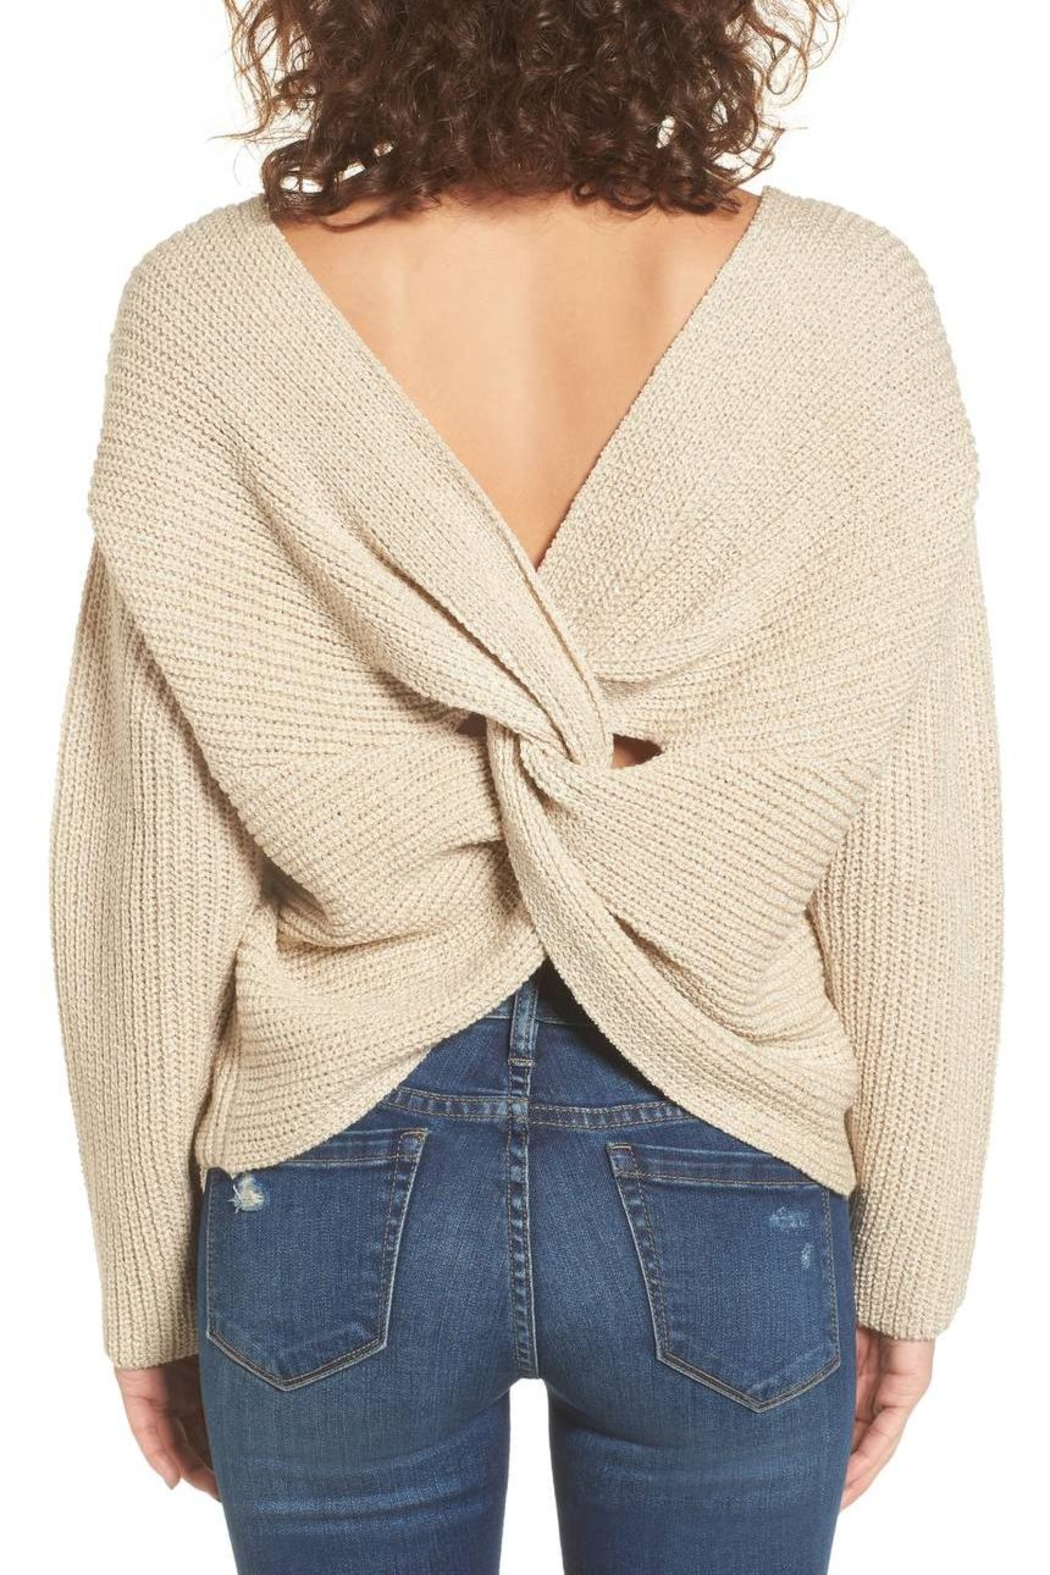 ASTR Twist Back Sweater - Front Full Image